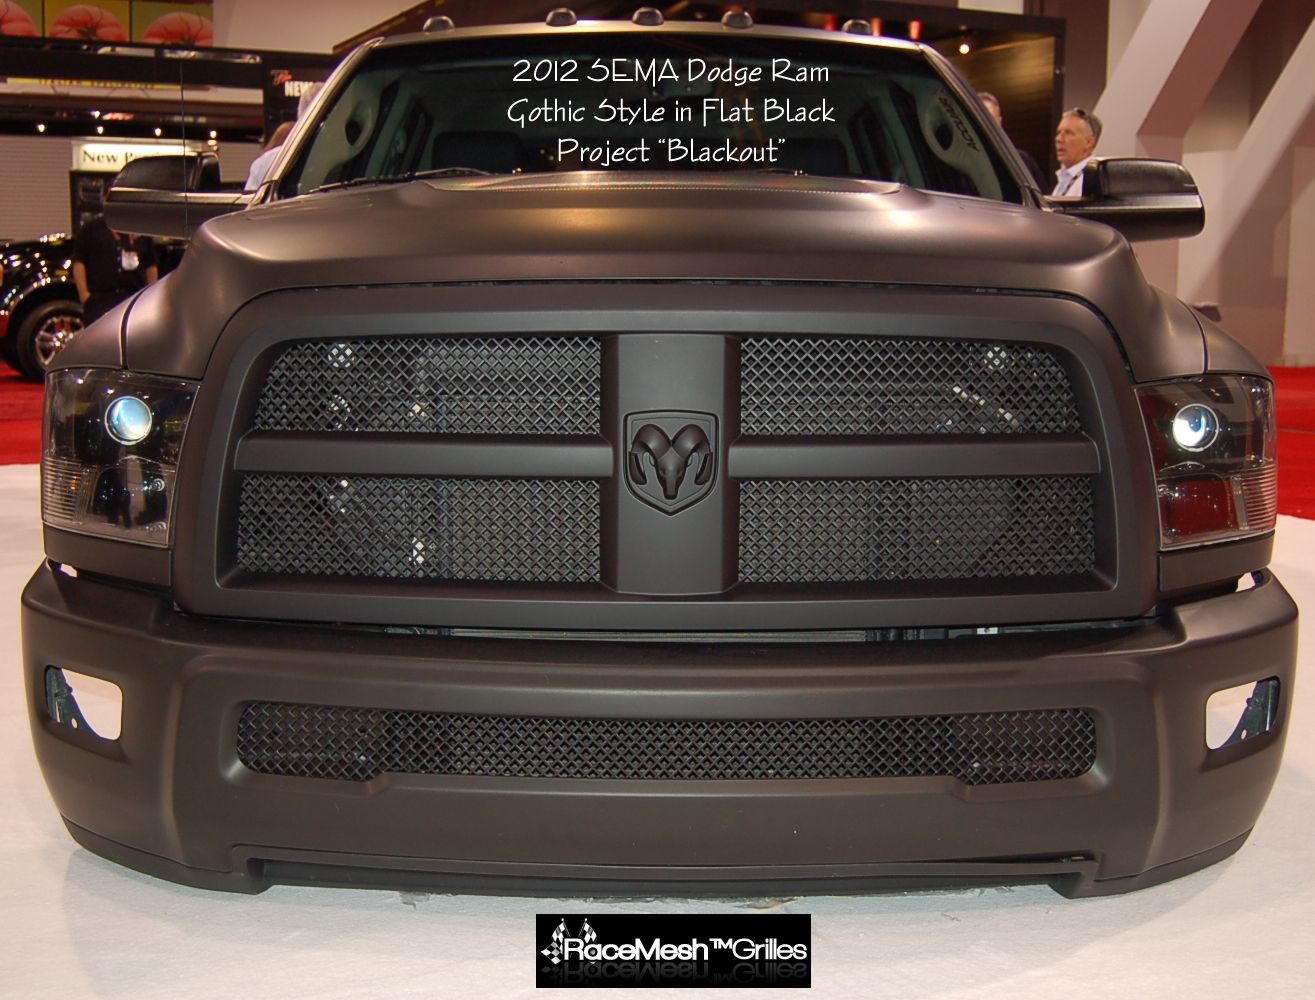 Lifted Truck Sema Ram Dodge